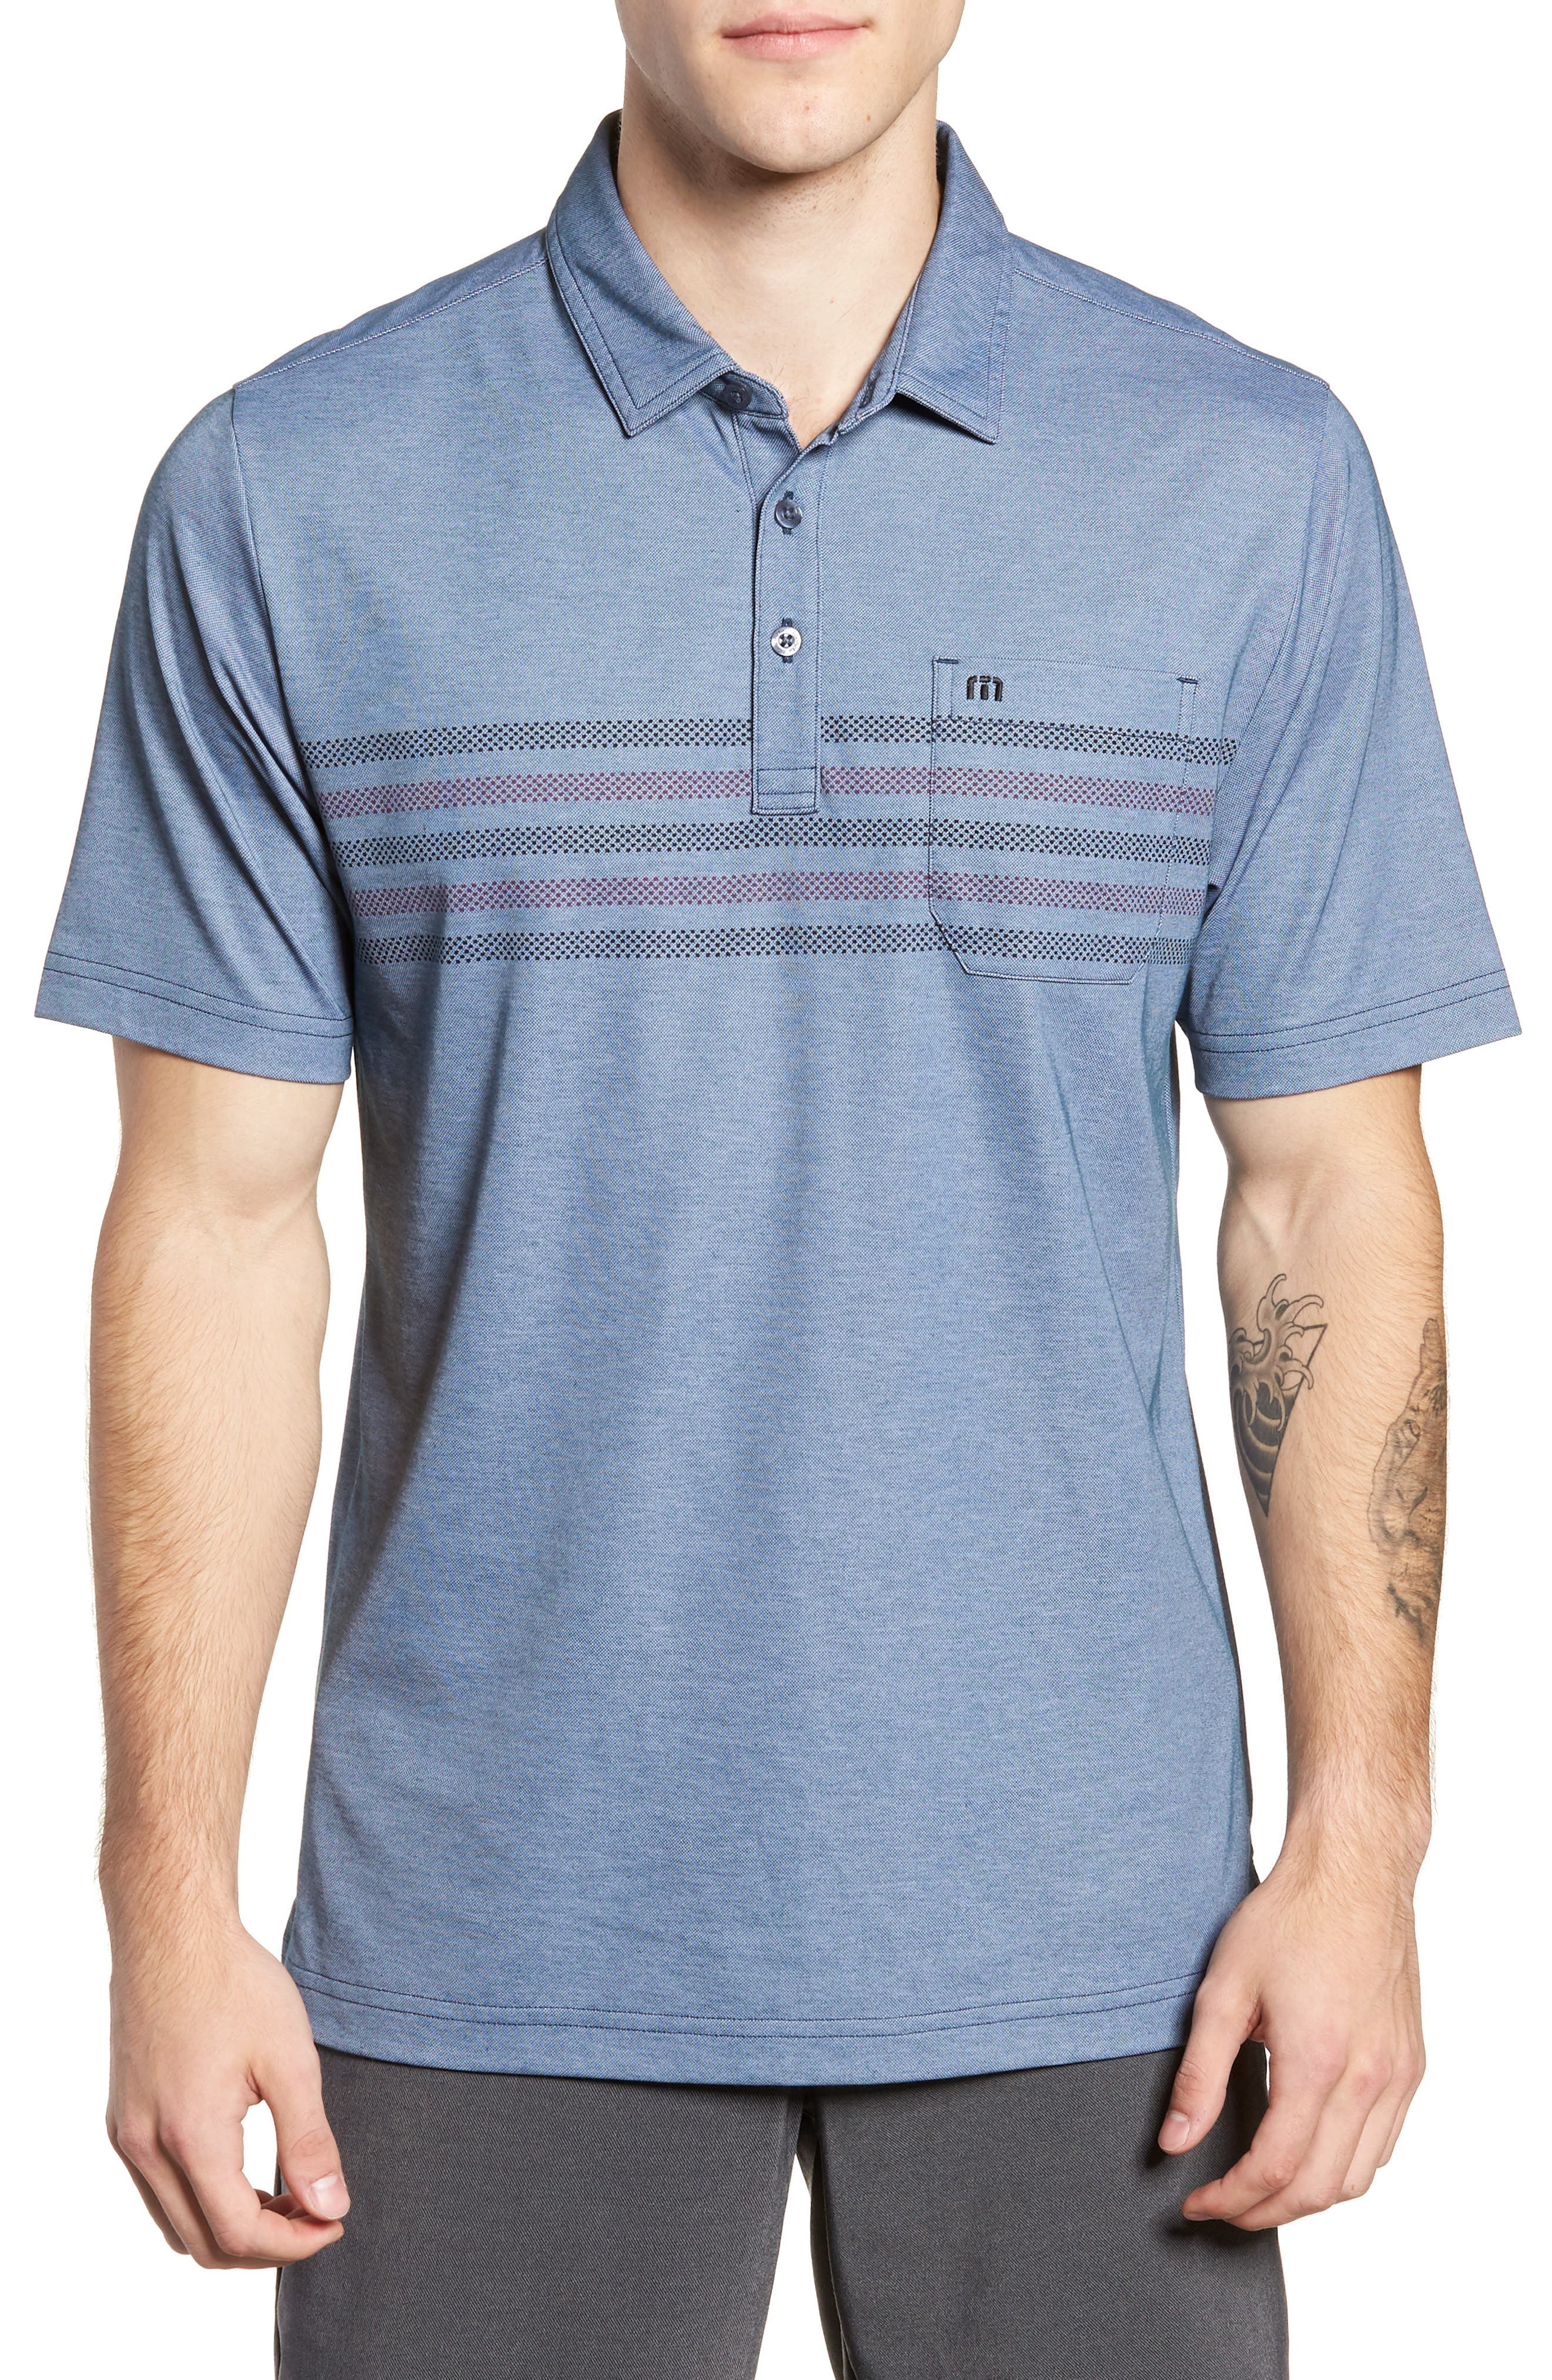 Racket Piqué Polo,                         Main,                         color, HEATHER BLUE WING TEAL